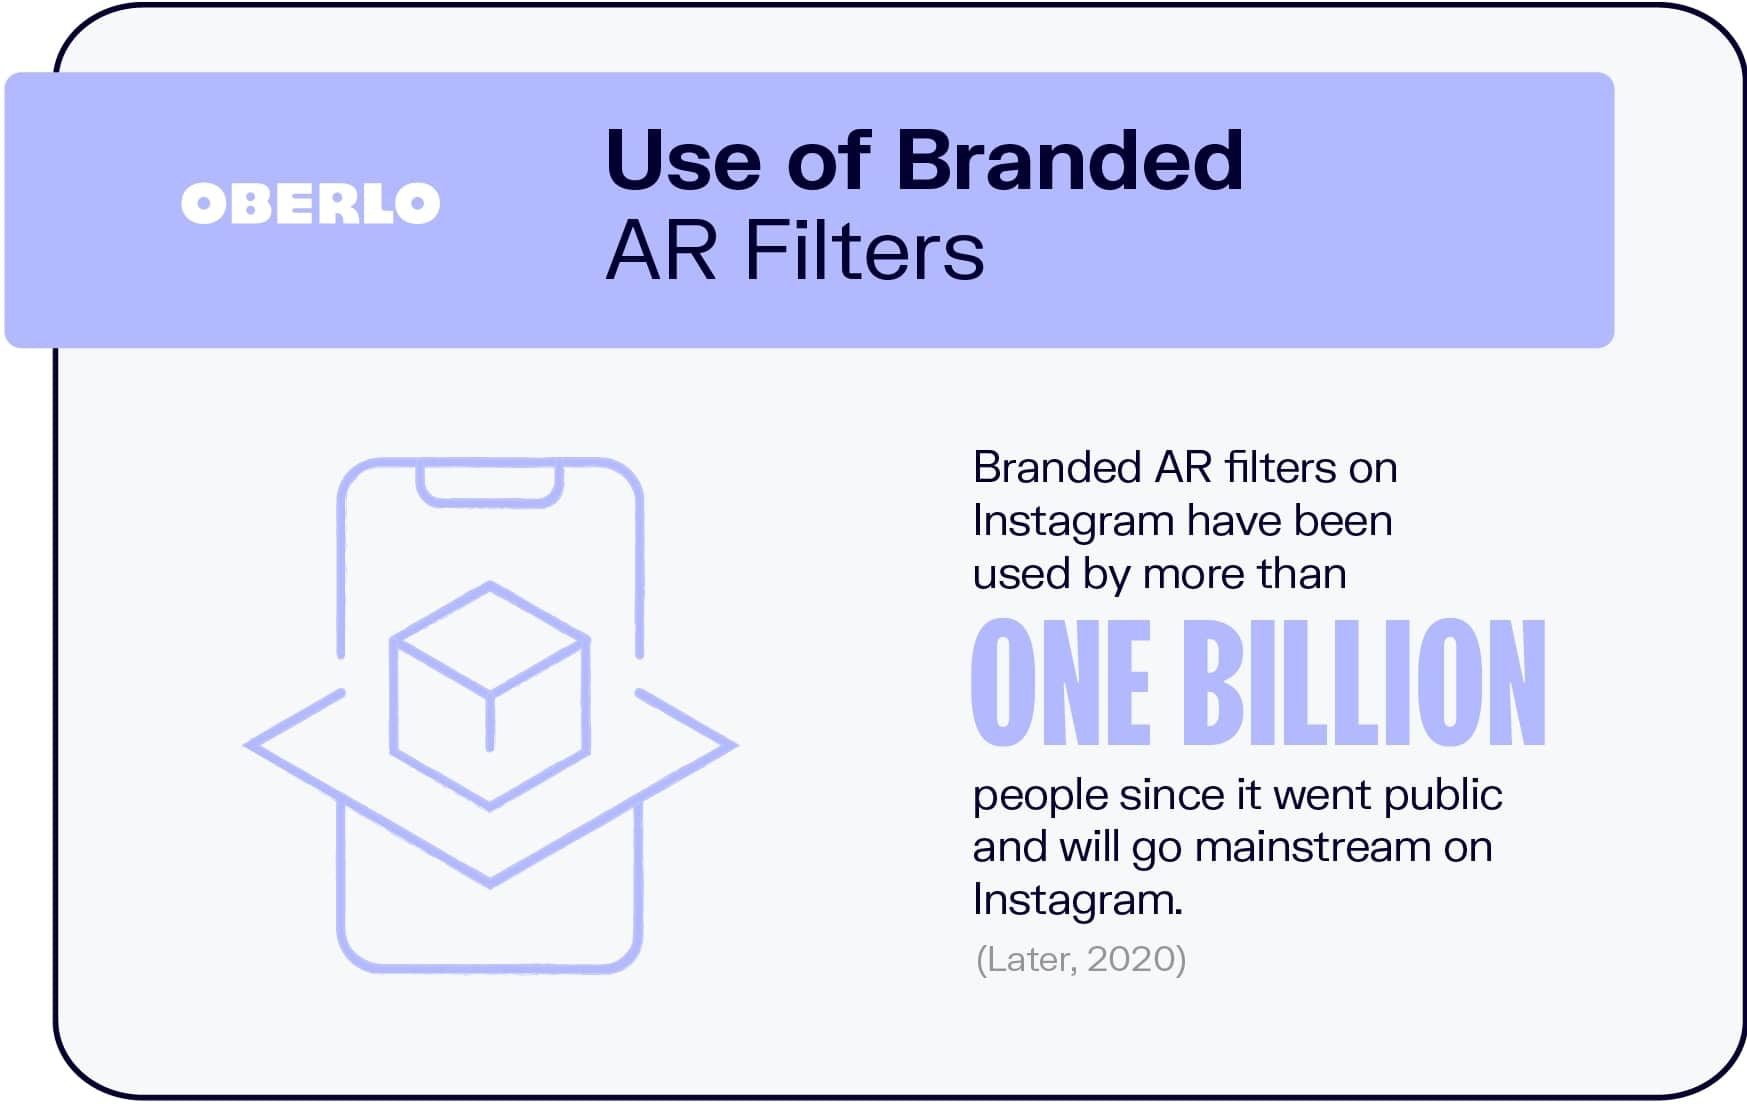 Use of Branded AR Filters